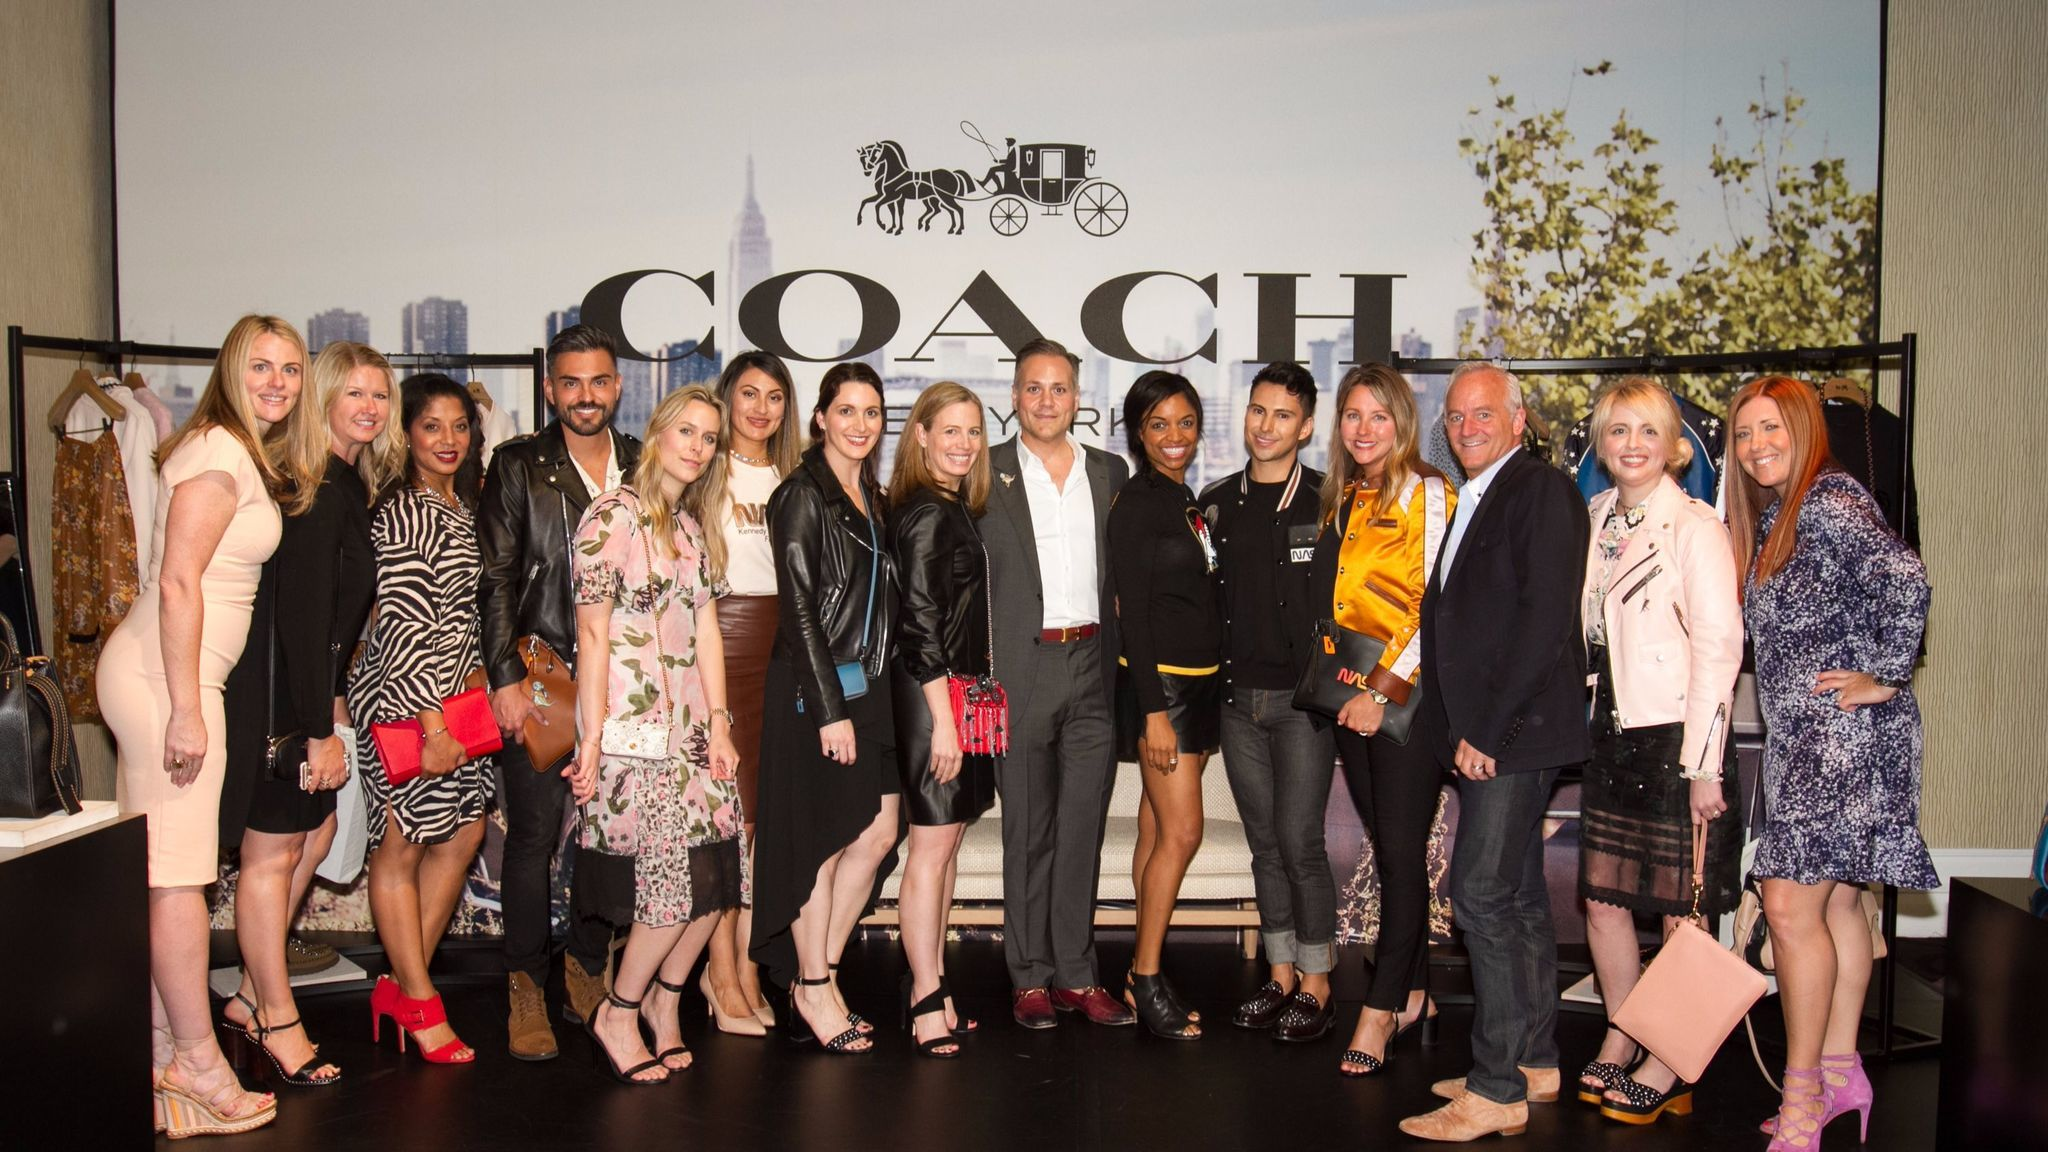 Executives and representatives from Coach, the New York-based apparel and accessories brand that sponsored the event, are on hand for the festivities. The Coach Foundation gave $3 million over three years to Step Up.